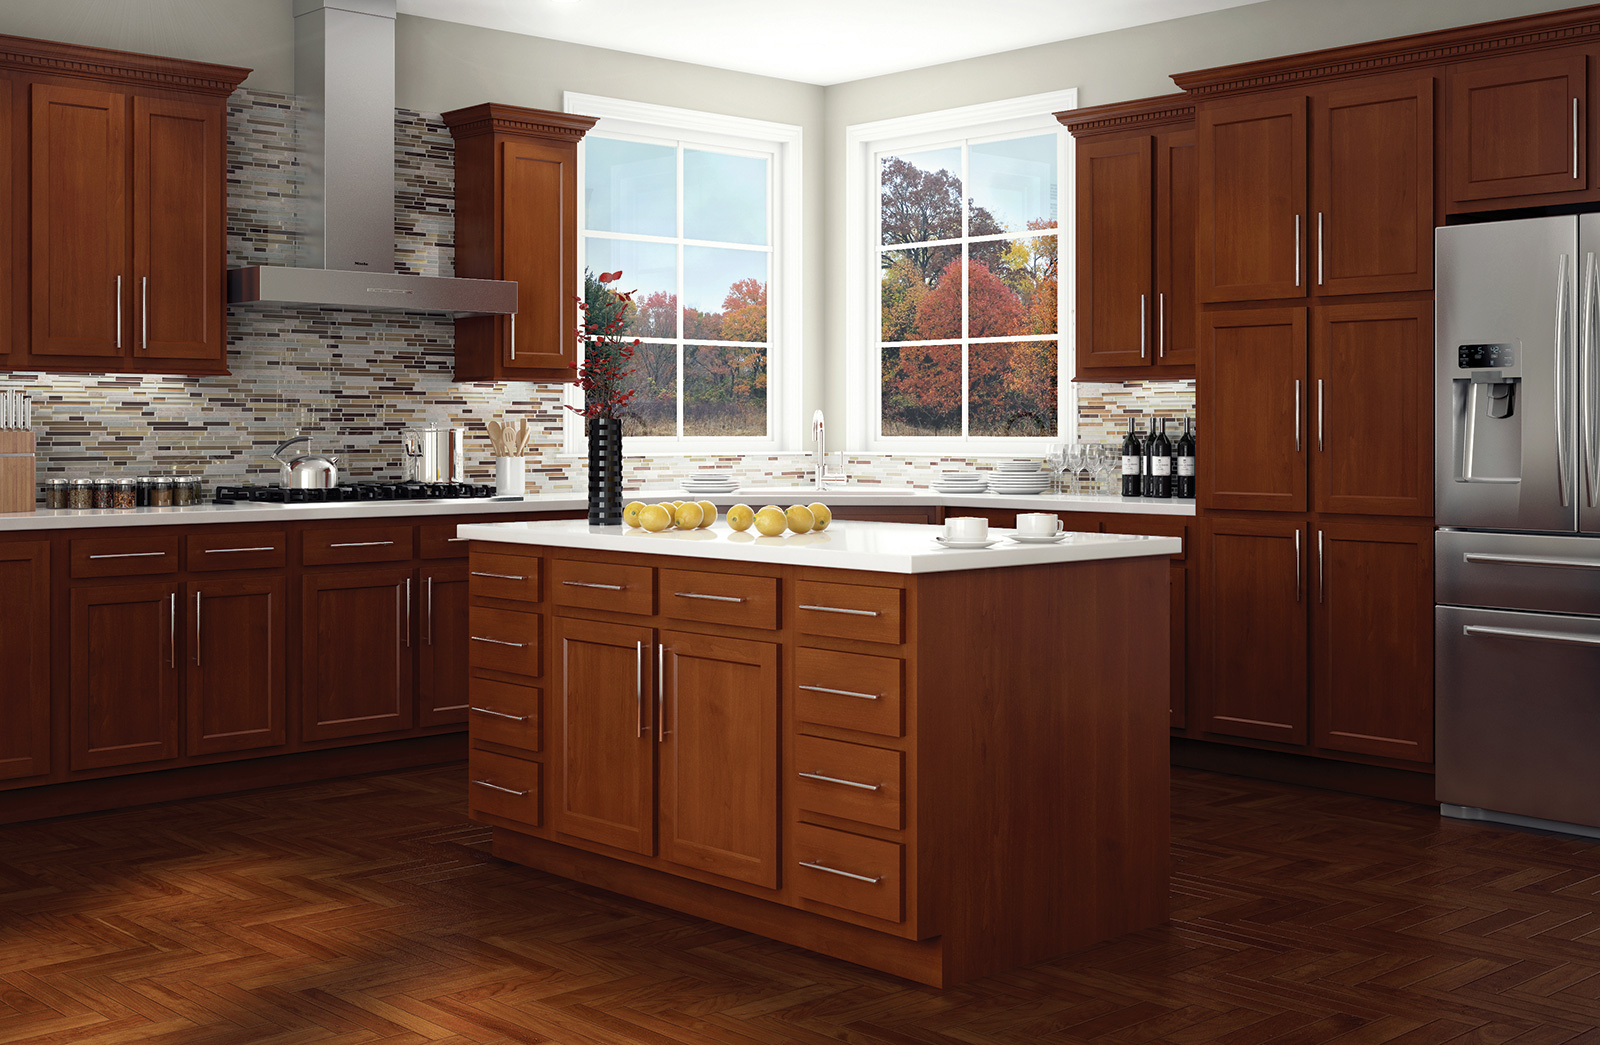 Cabinets asian granite cabinet for Quality kitchen cabinets